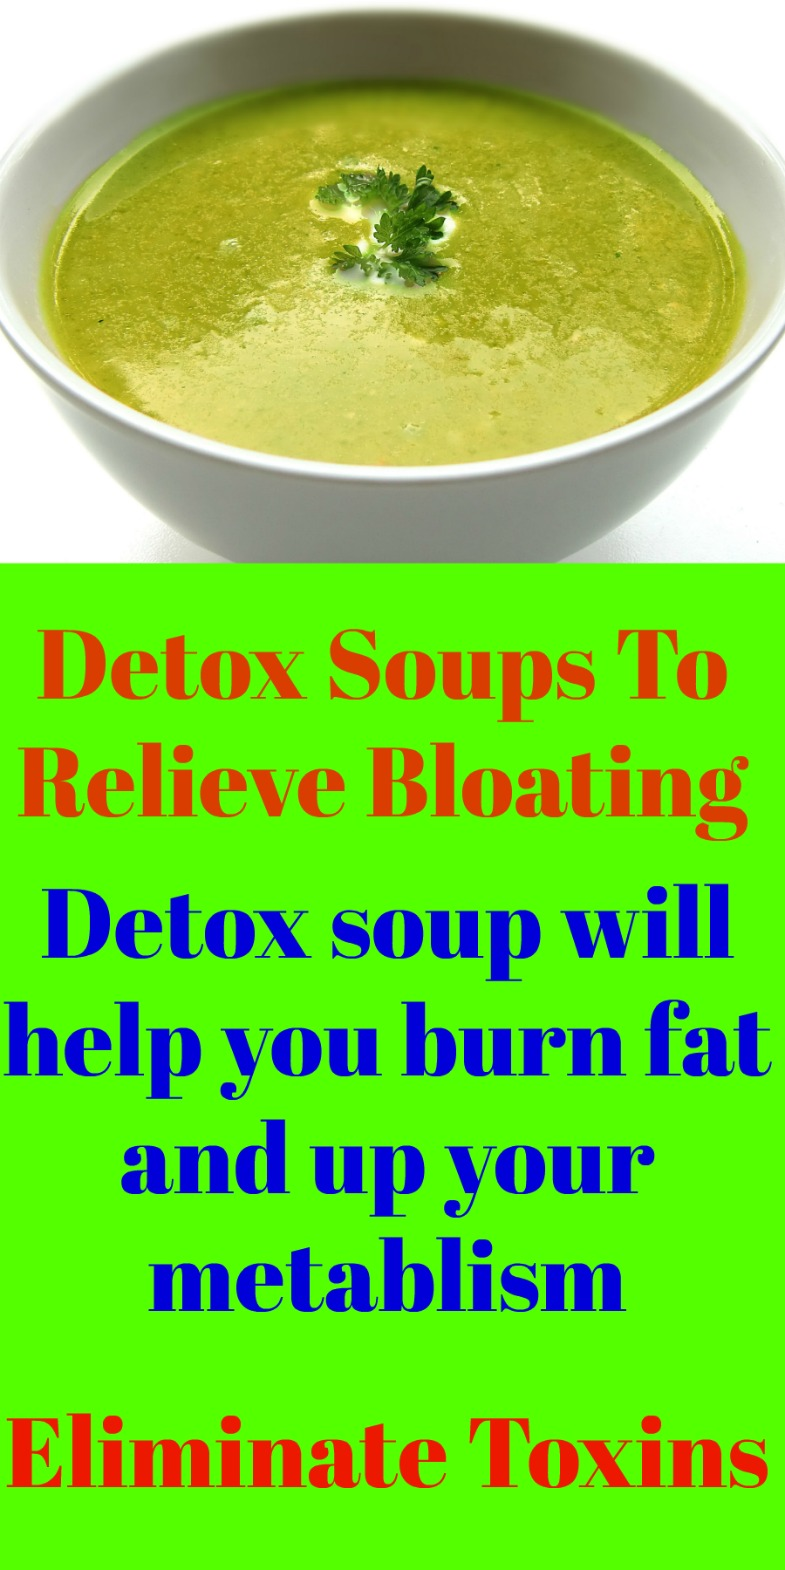 What to do when you're bloated? Sip on these 3 Detox Soups to help with bloat!! Sip on soup all day and you will lose that dreaded bloat from carrying too much waste inside your belly.